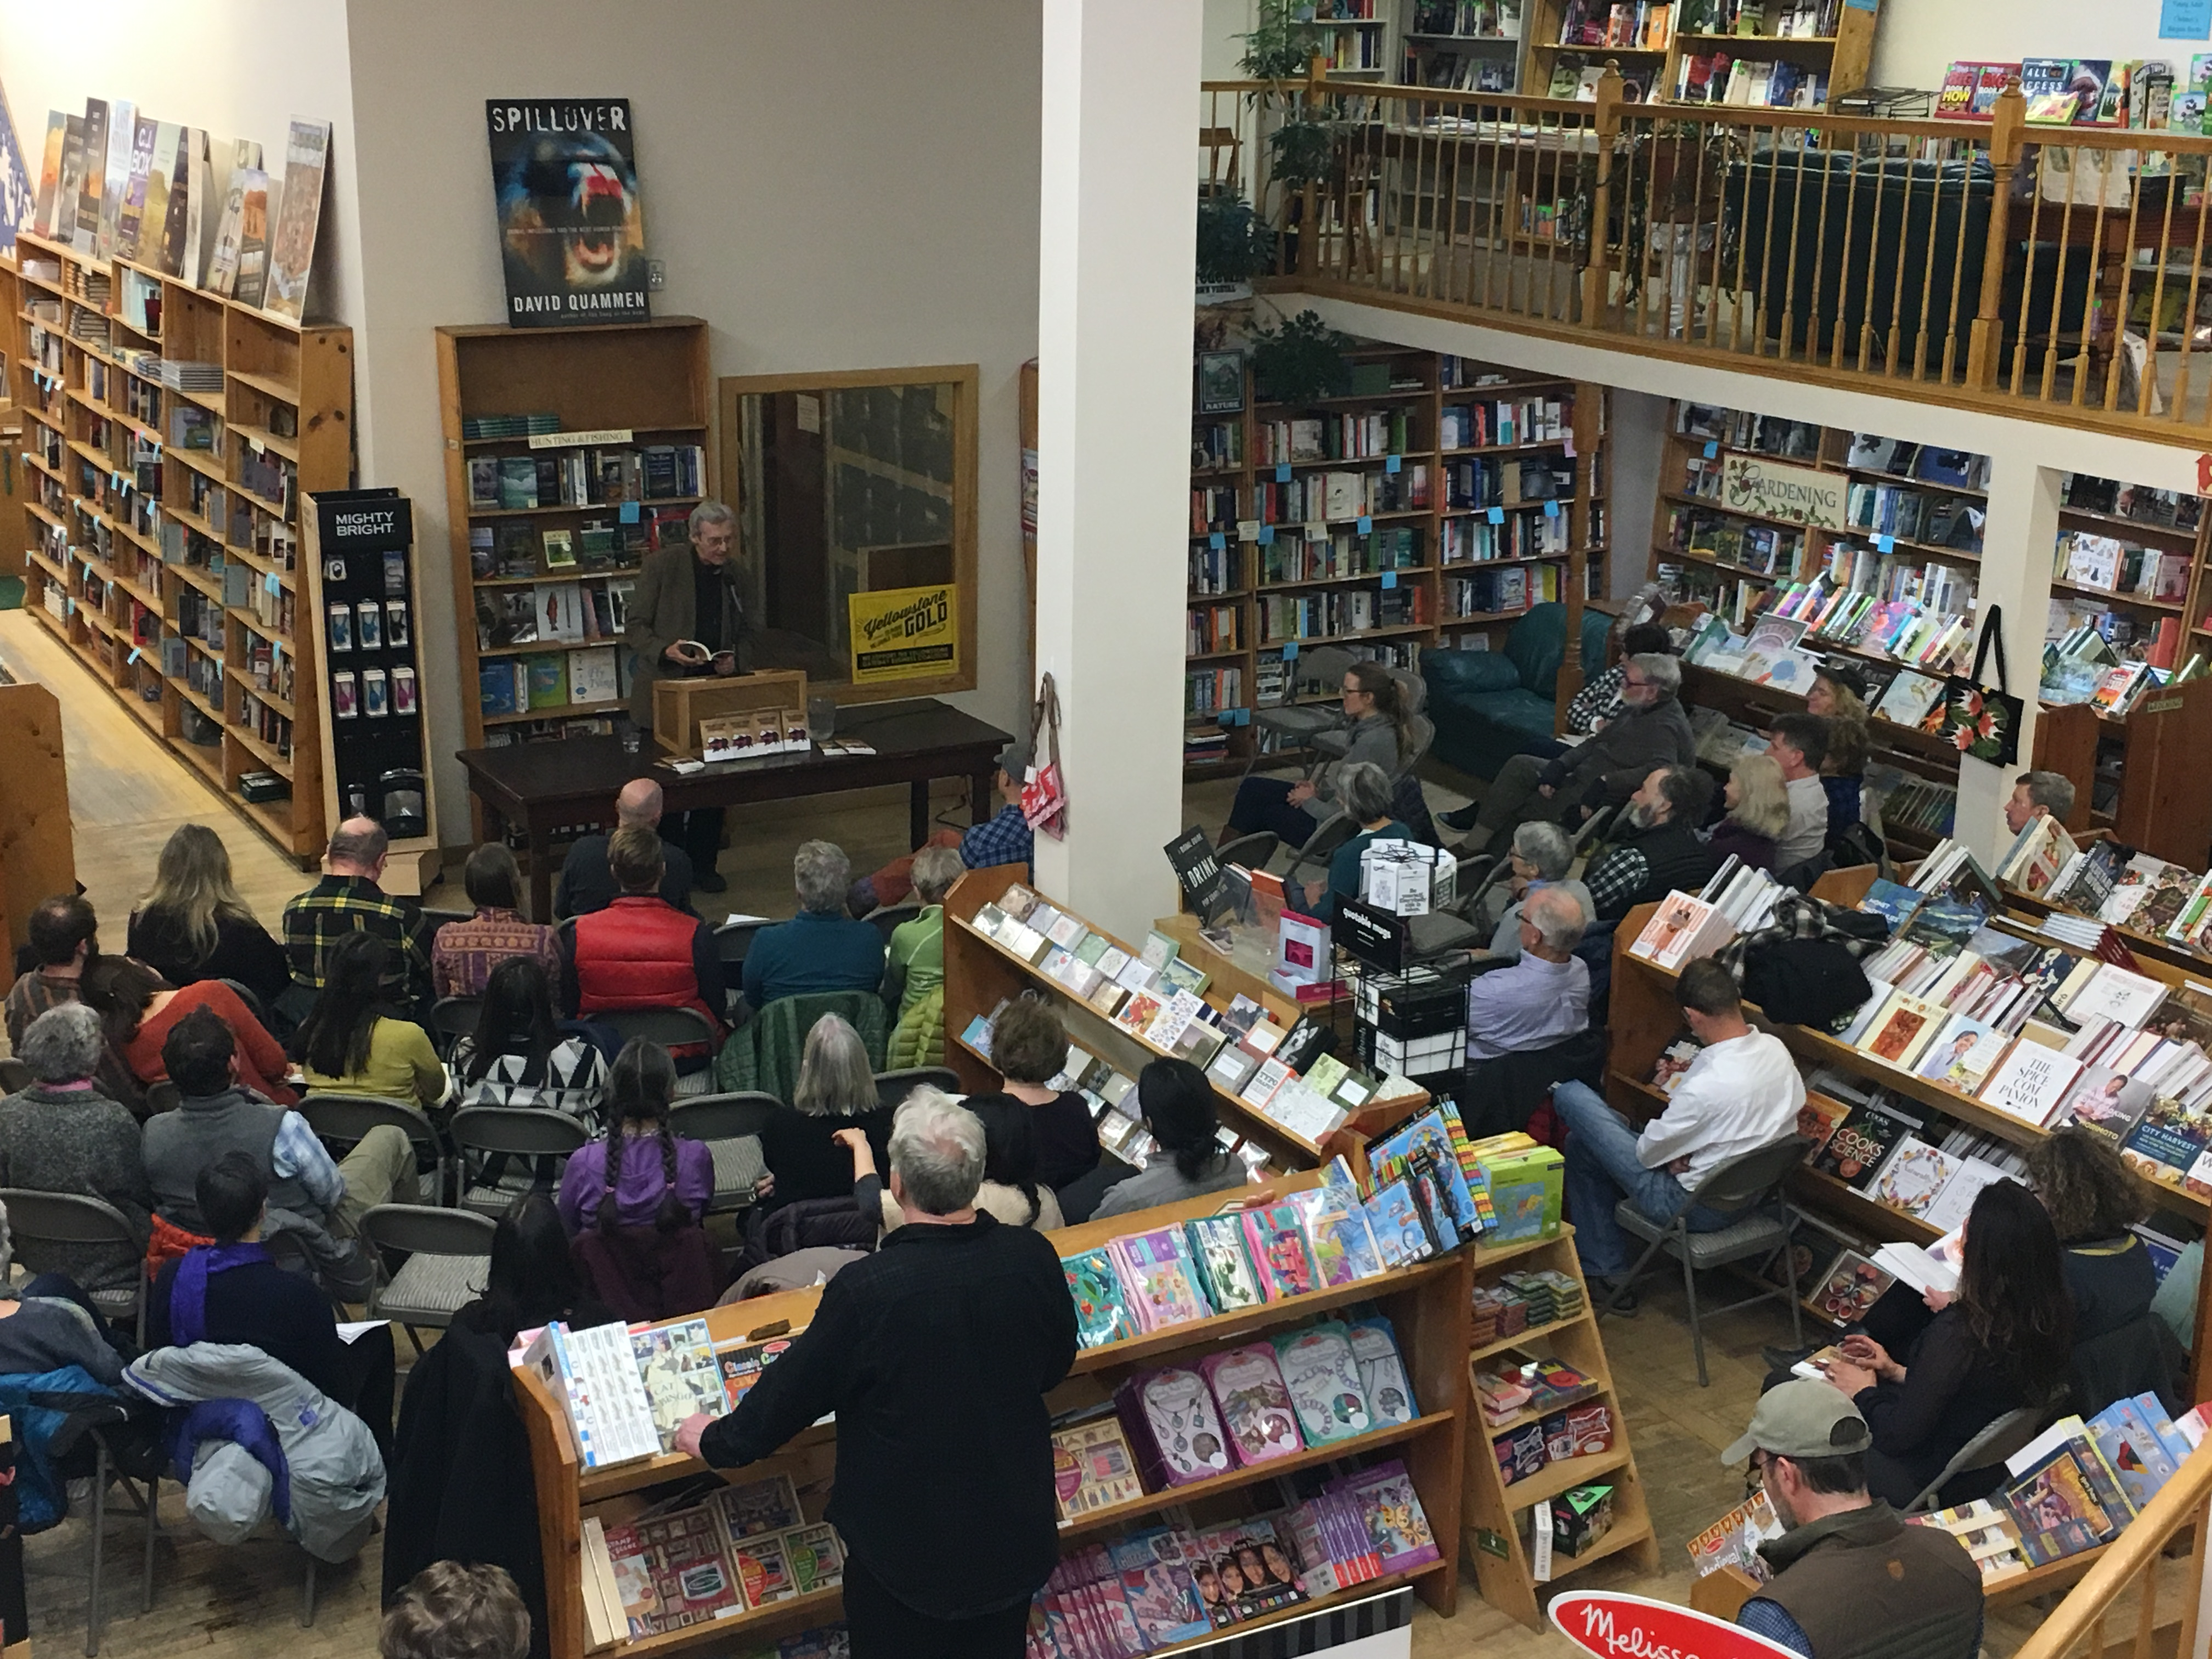 Author event at the Country Bookshelf